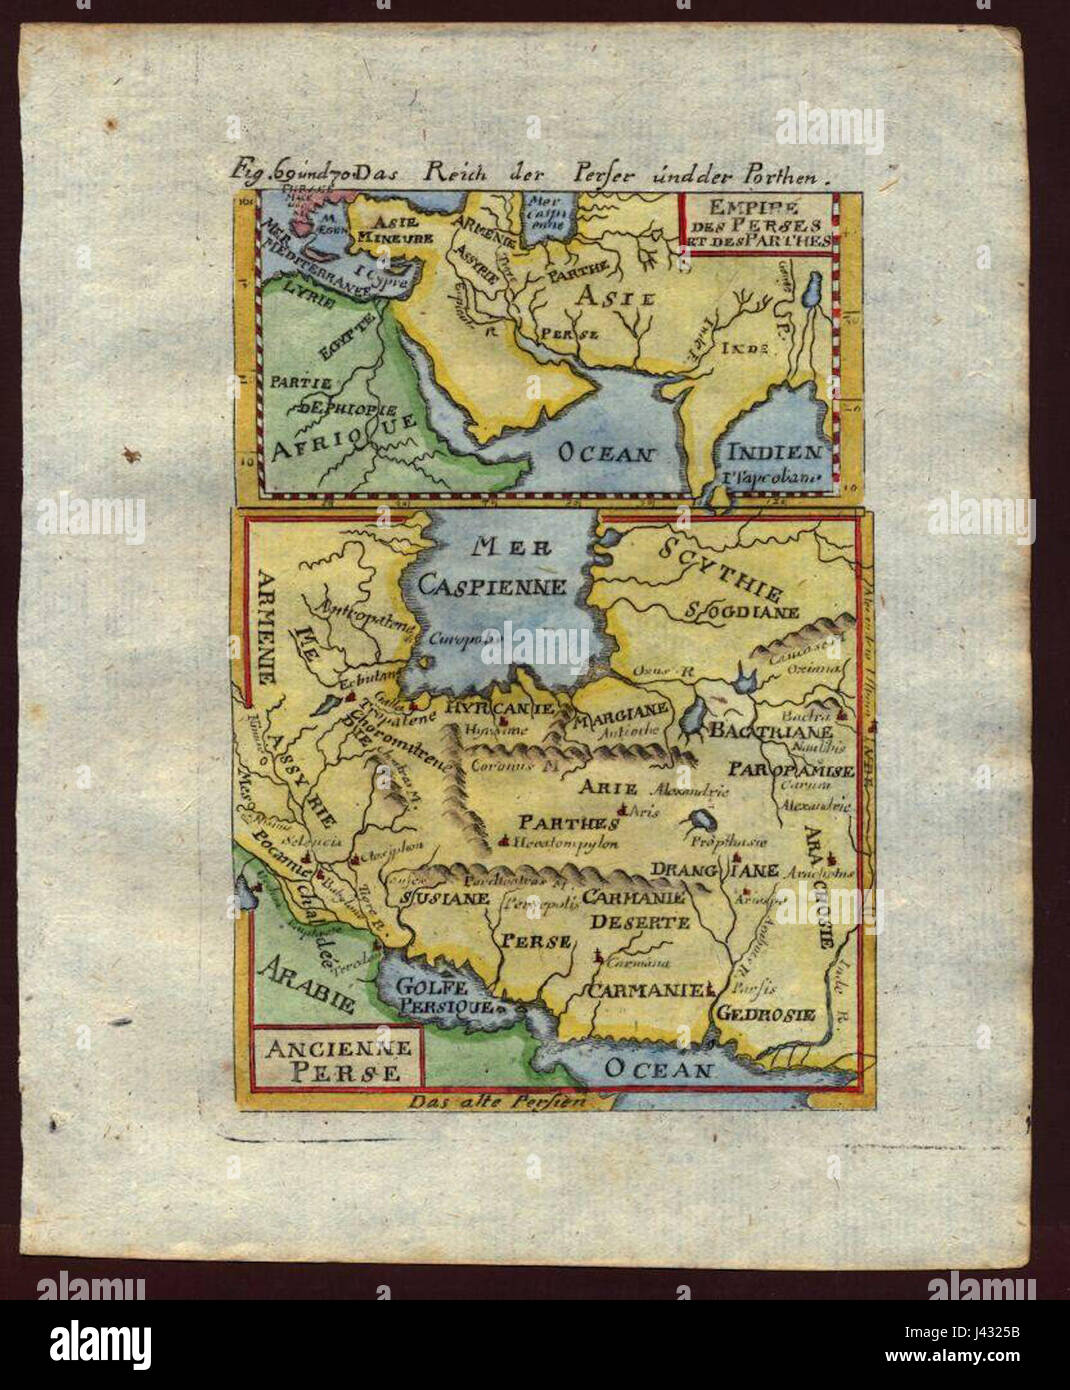 Map of ancient Persia, 1719 Stock Photo: 140209143 - Alamy